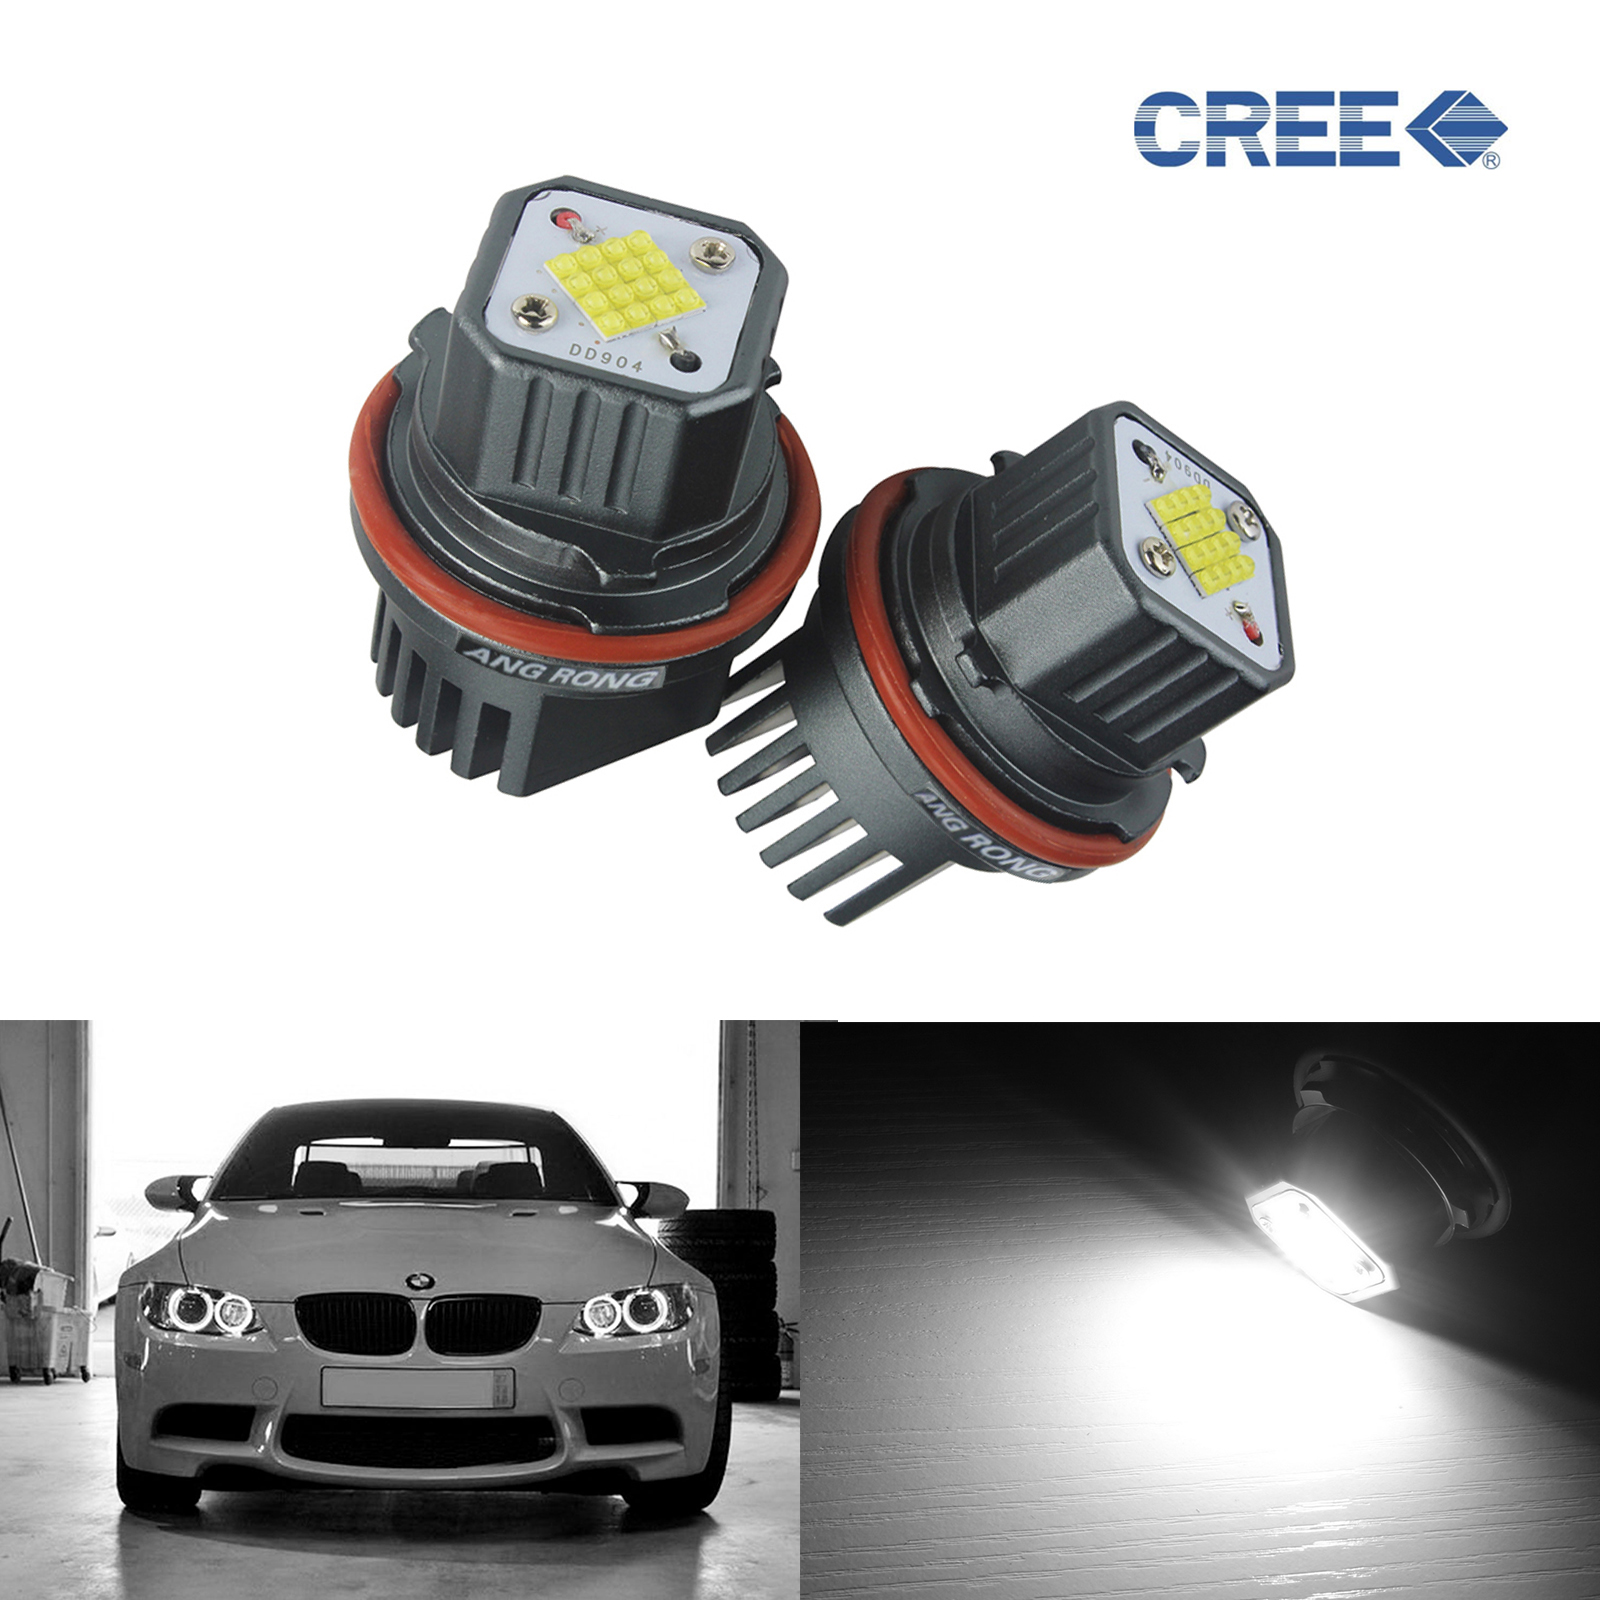 ANGRONG 2x Updated 80W C.ree LED Marker For BMW Angel Eyes Light E39 E87 E60 E61 E63/E64 E65/E66 X3 X5 2x e39 e60 e61 e87 e53 e63 e65 e83 x3 led angel eye halo light bulb 90w 00 03 5 series e39 m5 ca291